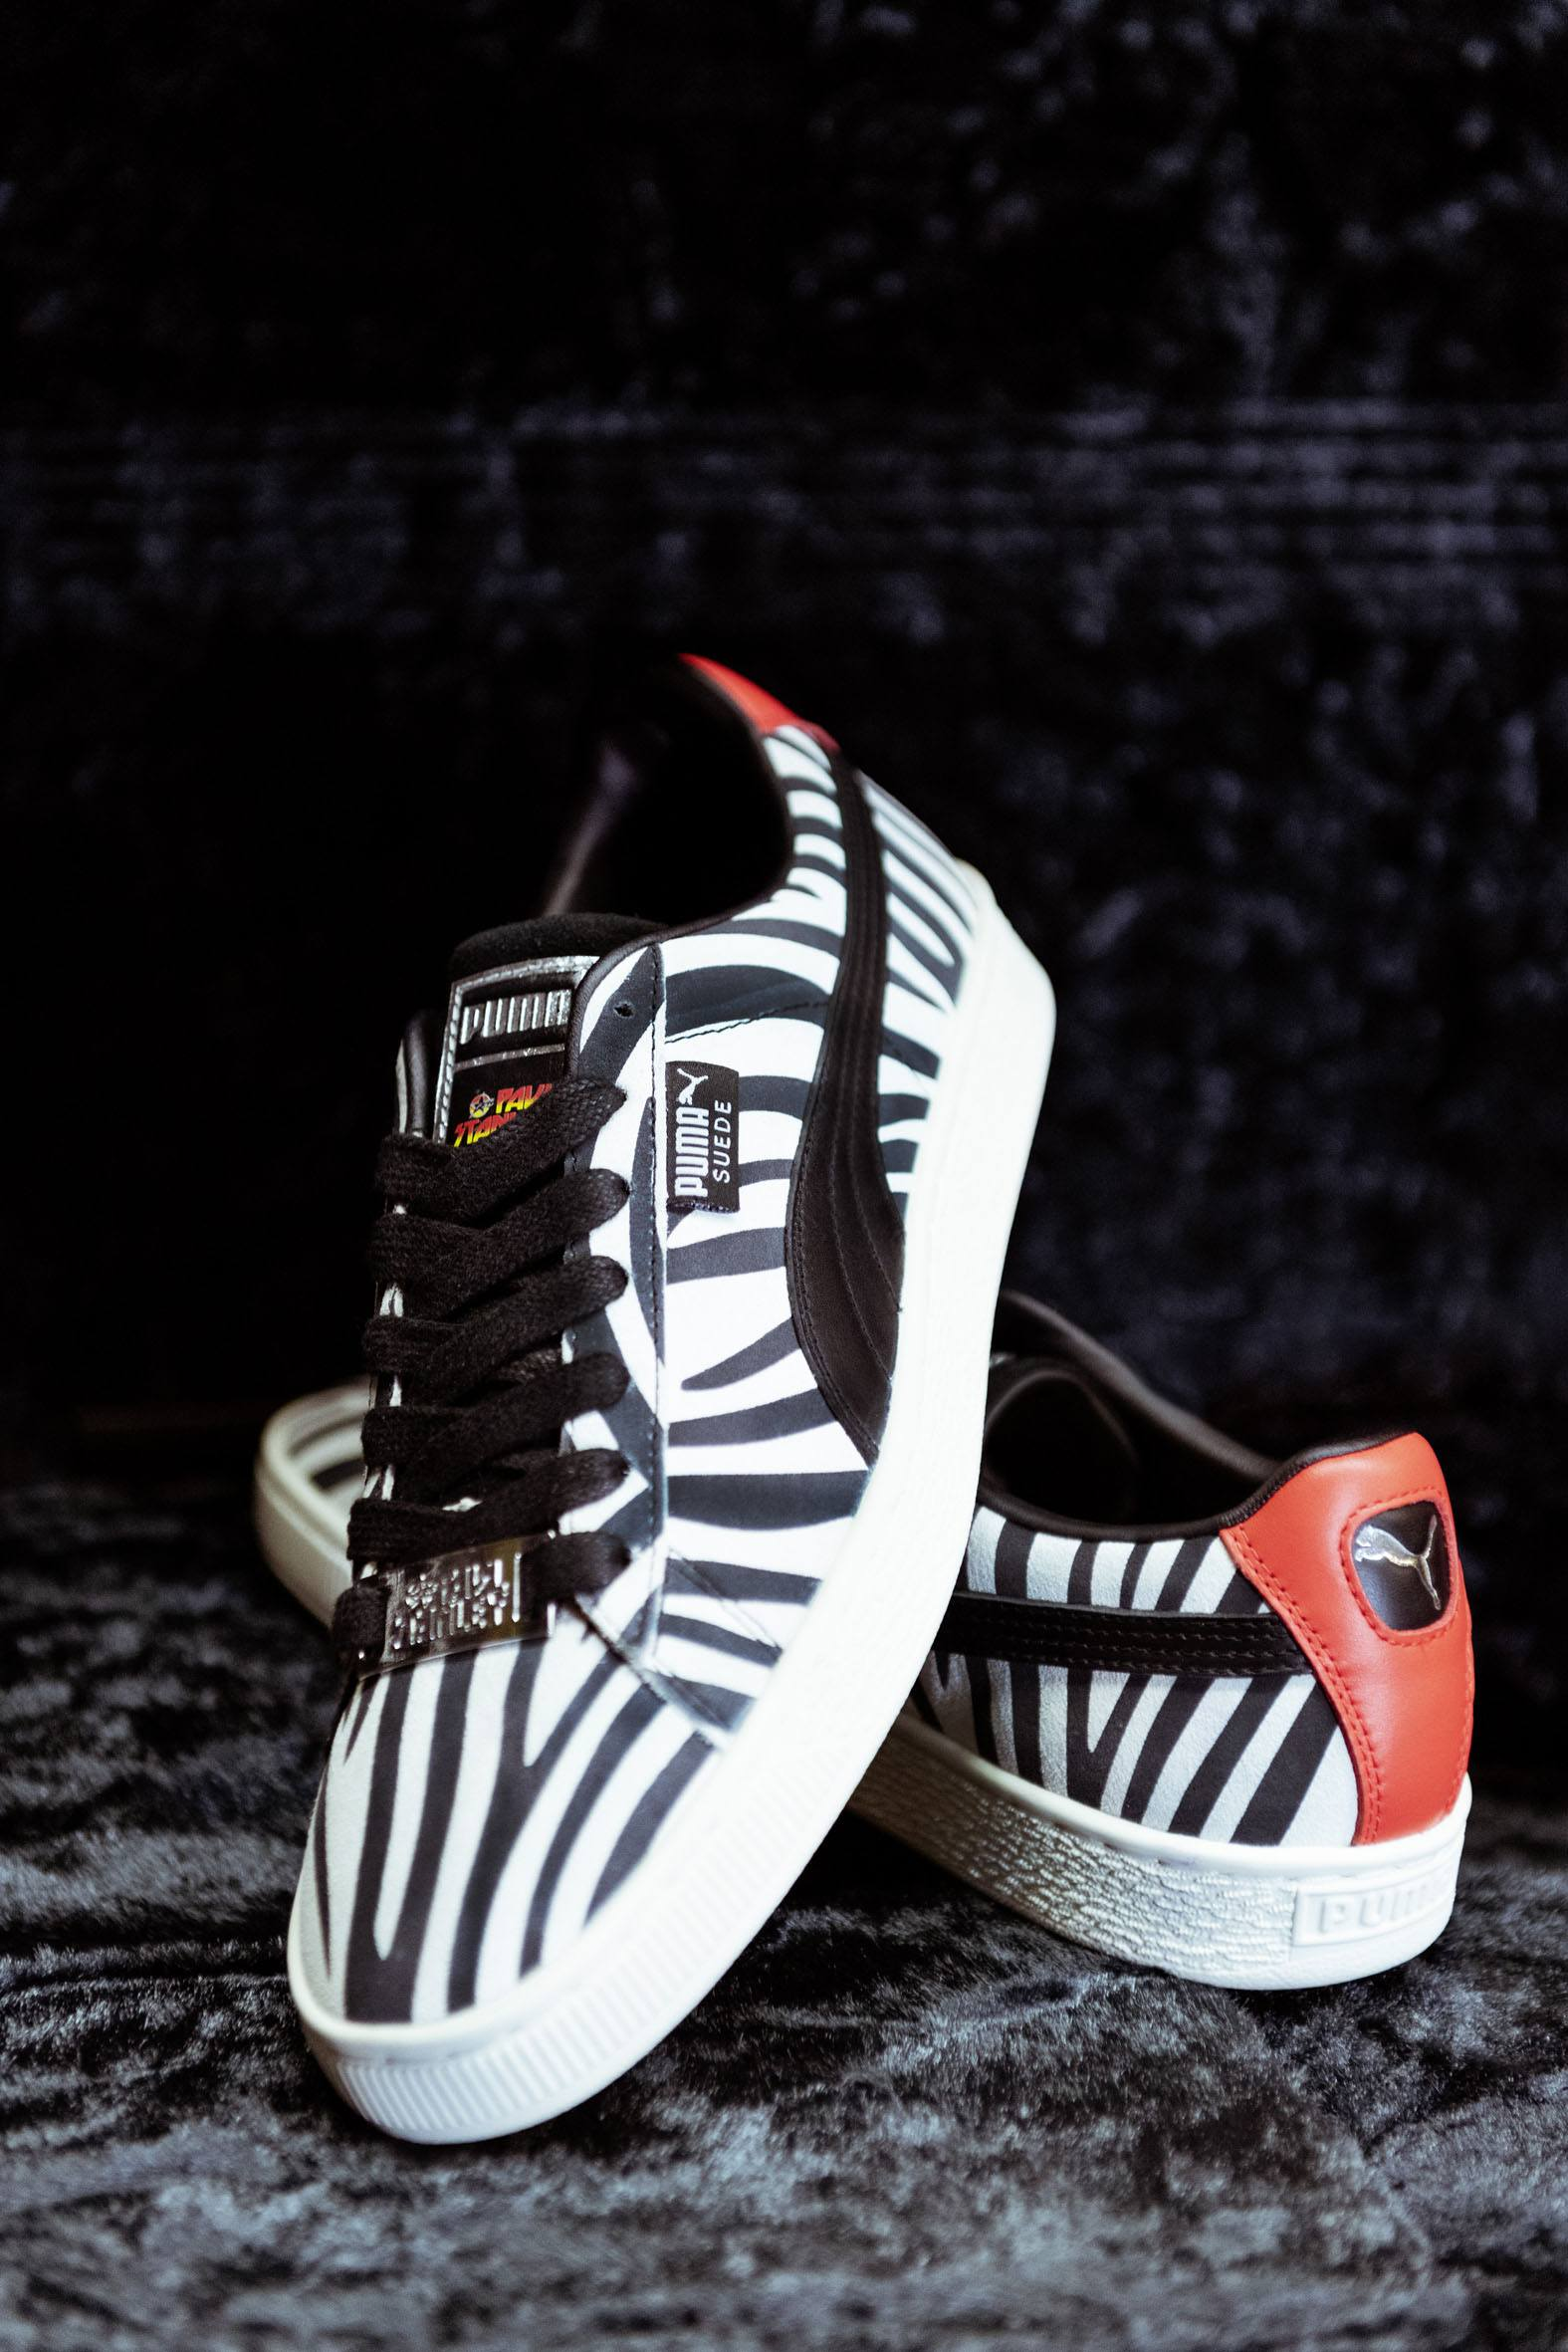 08dcda38477 Rock legend Paul Stanley collabs with PUMA for Iconic Suede drop ...